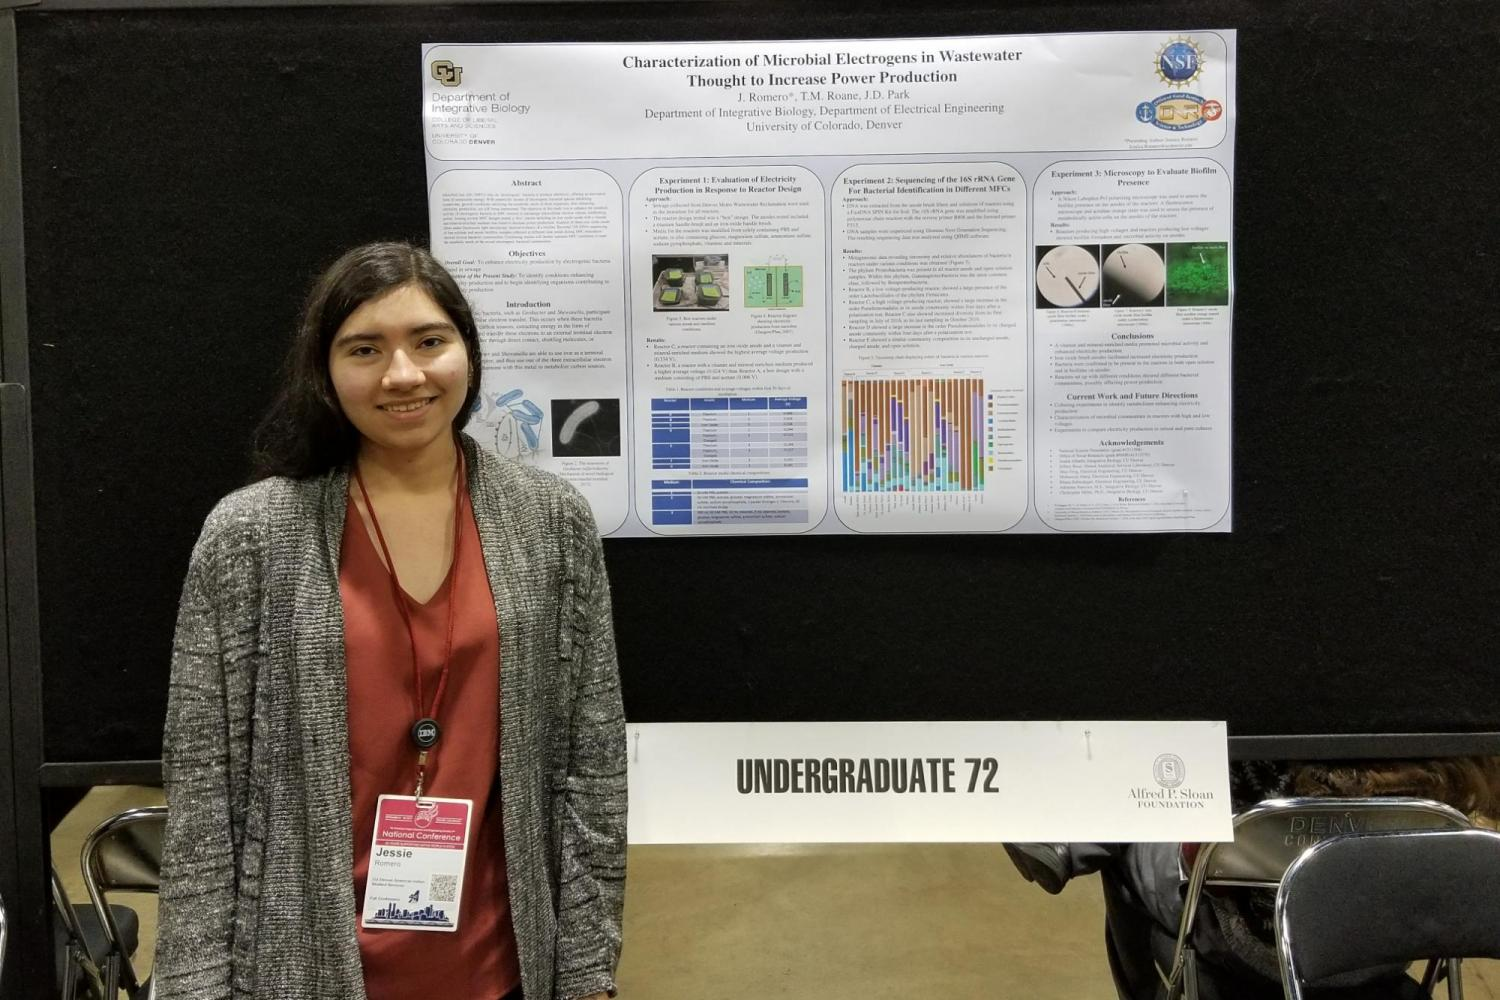 Biology student presenting research poster